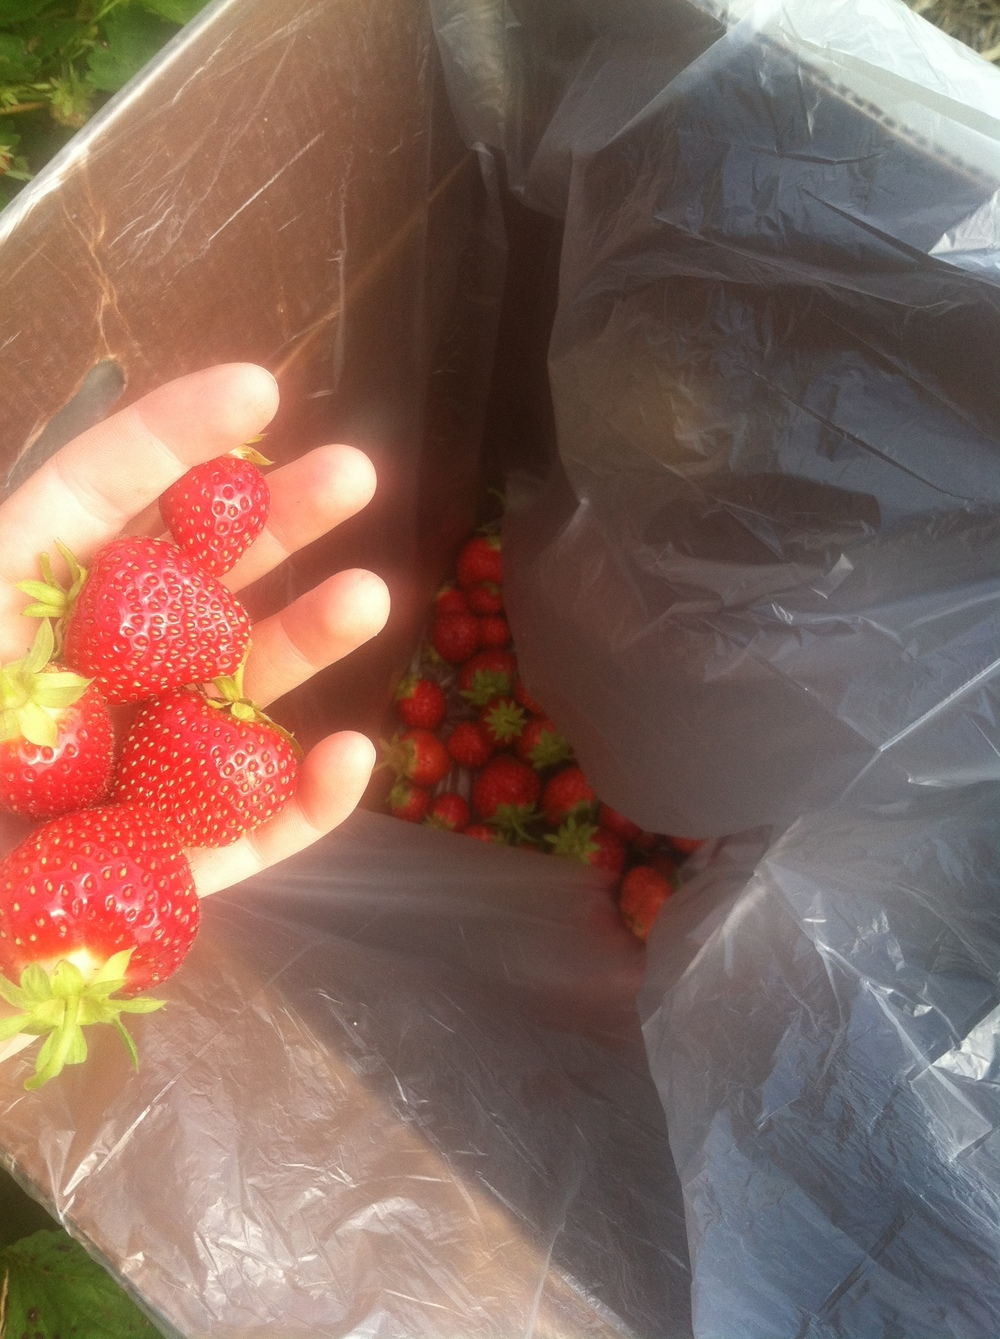 Strawberries gleaned from Wood's in 2015